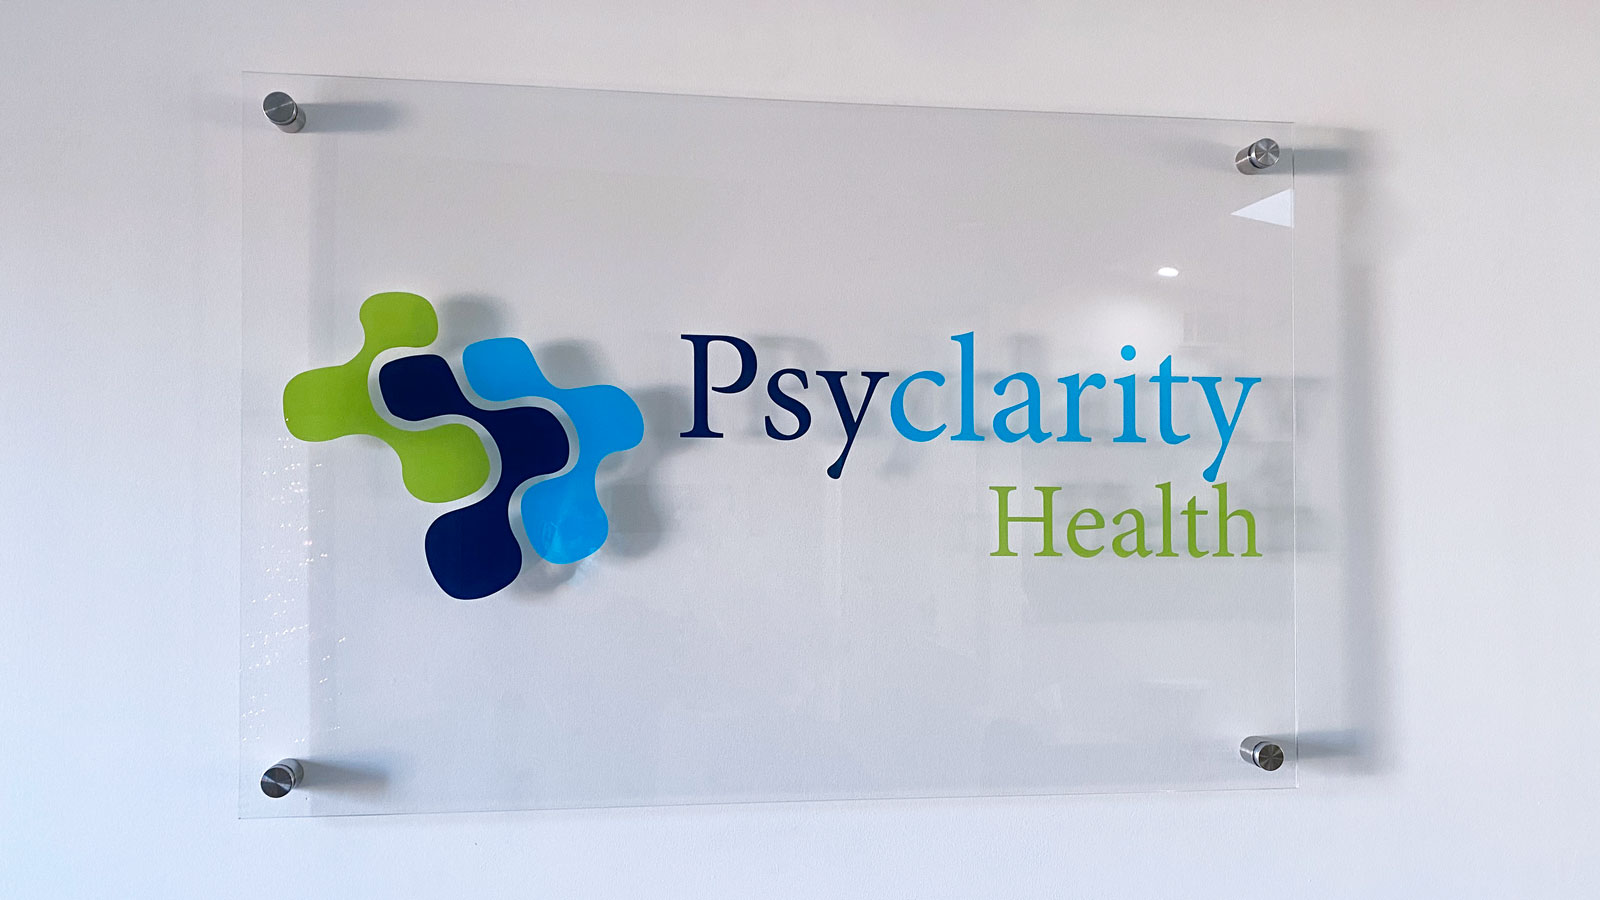 Psyclarity Health office sign made of acrylic